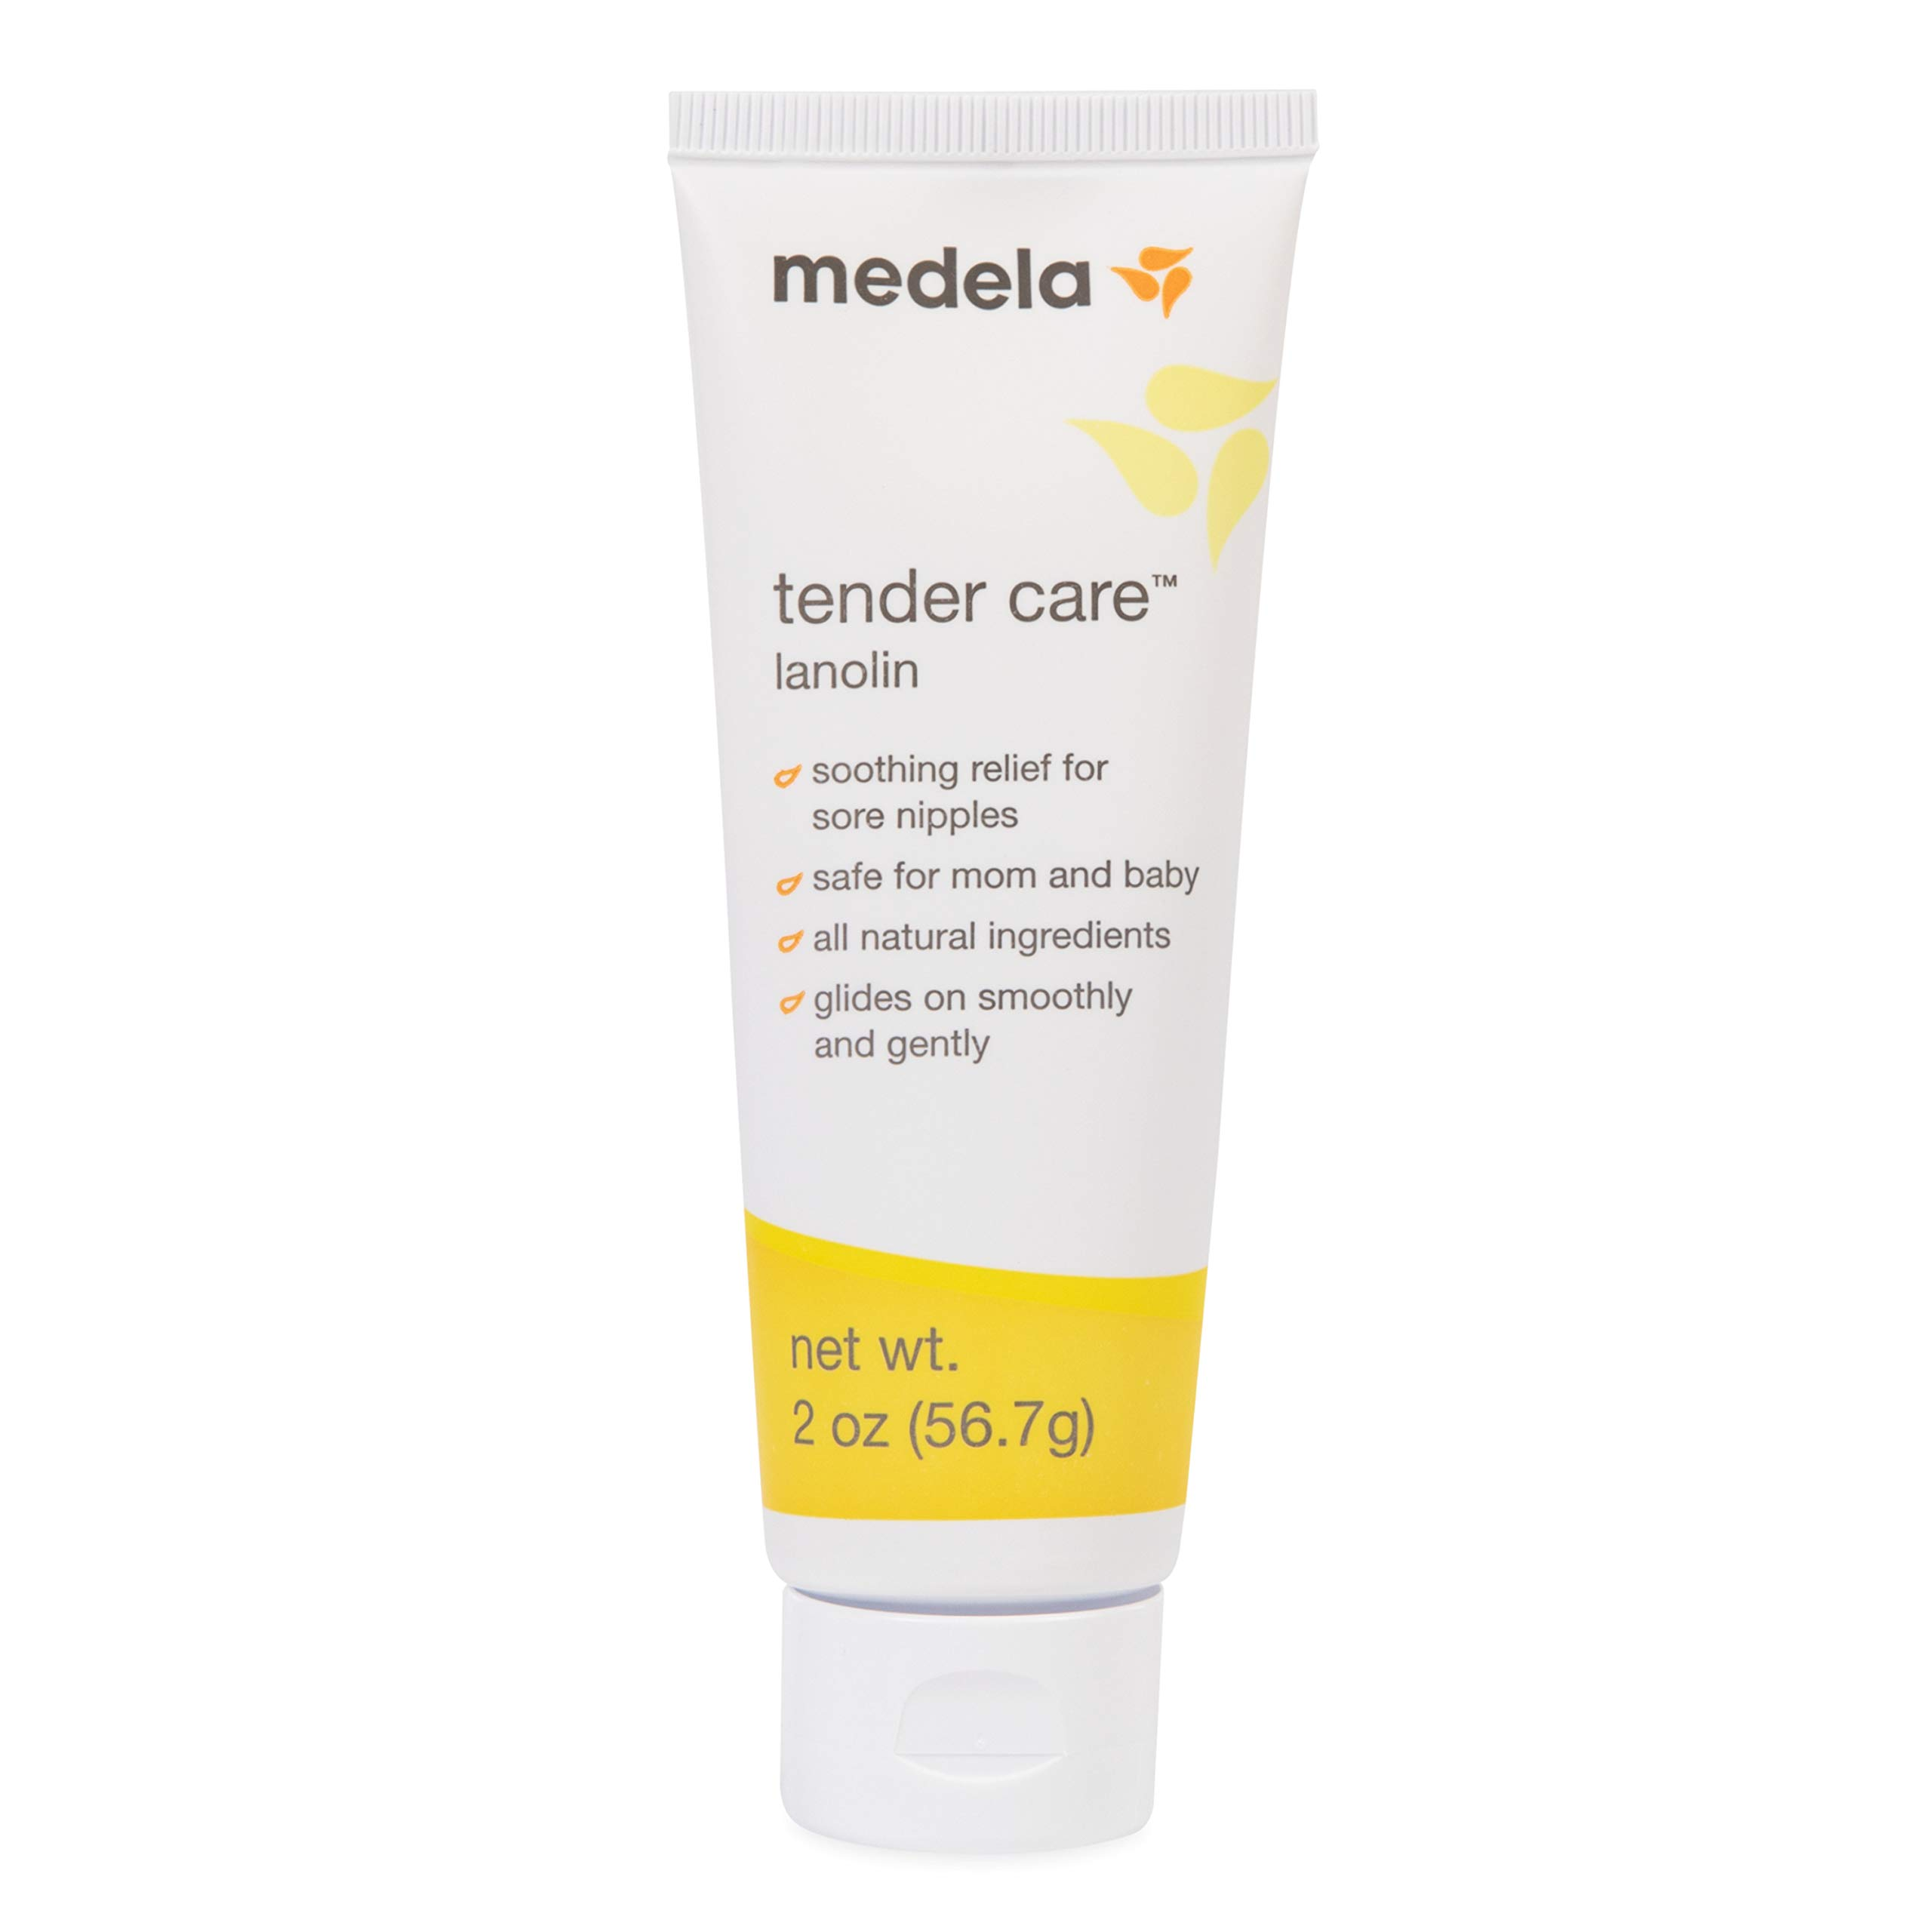 Medela, Tender Care, Lanolin Nipple Cream for Breastfeeding, All-Natural Nipple Cream, Tender Care Lanolin, Offers Soothing Protection, Hypoallergenic, All-Natural Ingredients, 100% Safe, 2 oz. Tube